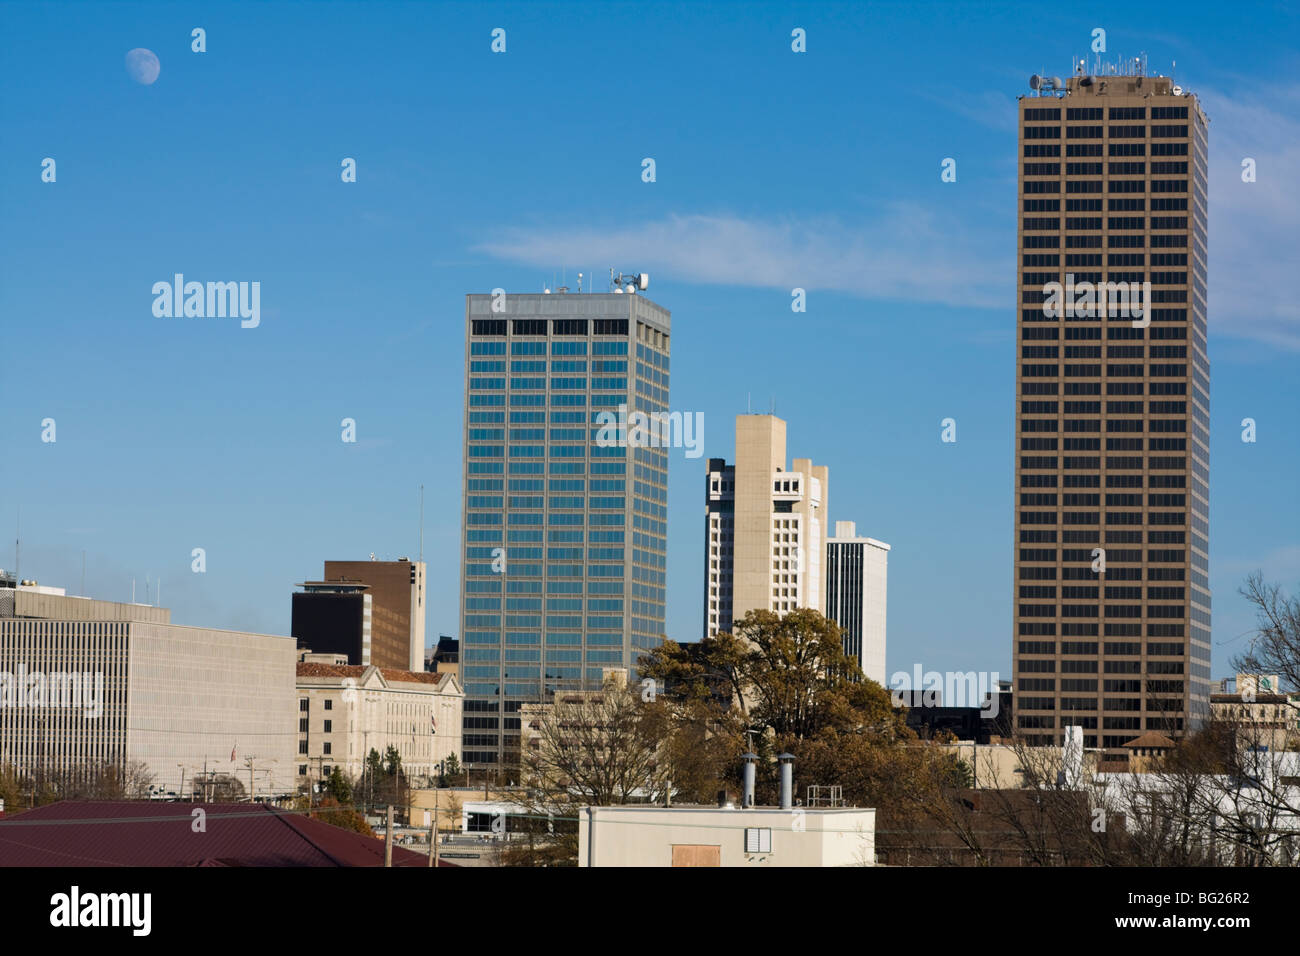 Moon over Little Rock - Stock Image